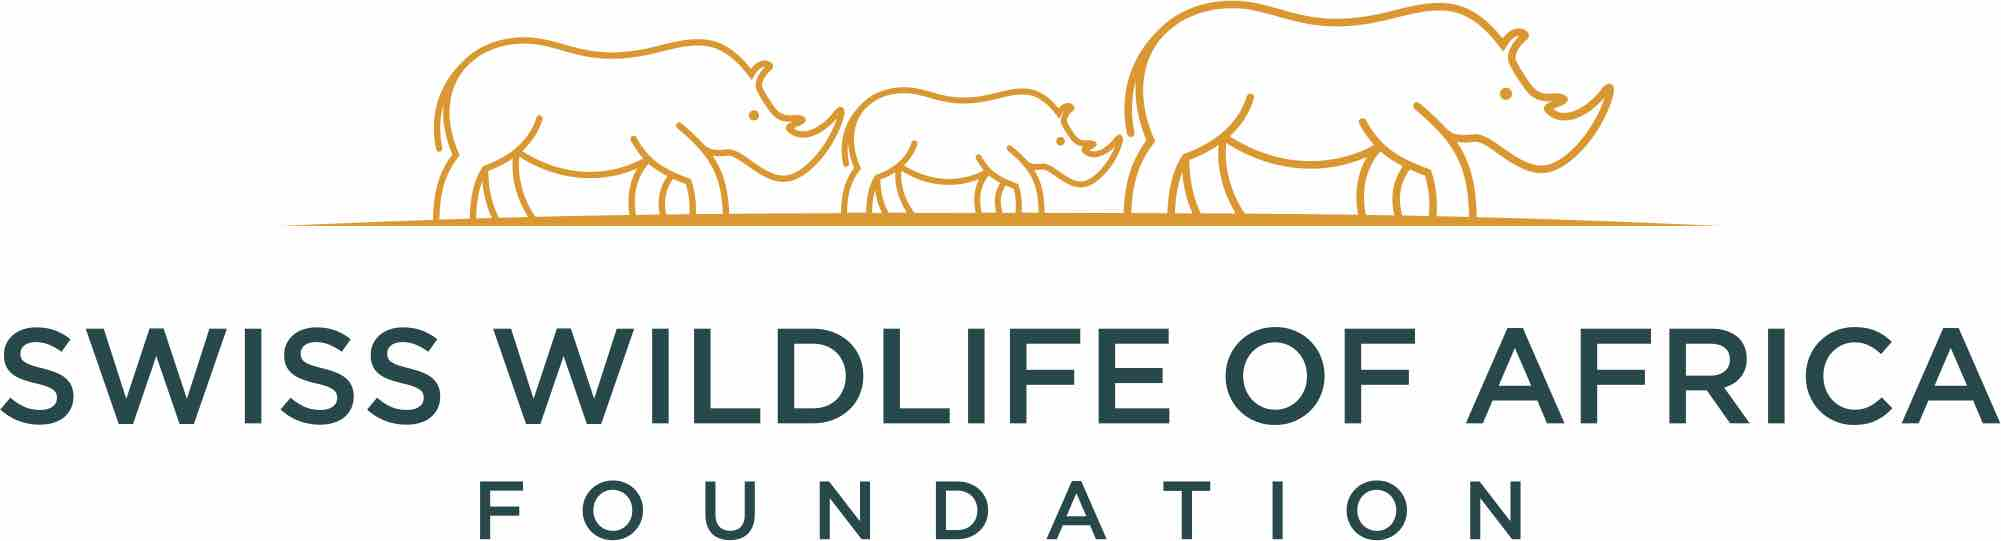 Swiss-wildlife-of-southafrica-foundation-logo